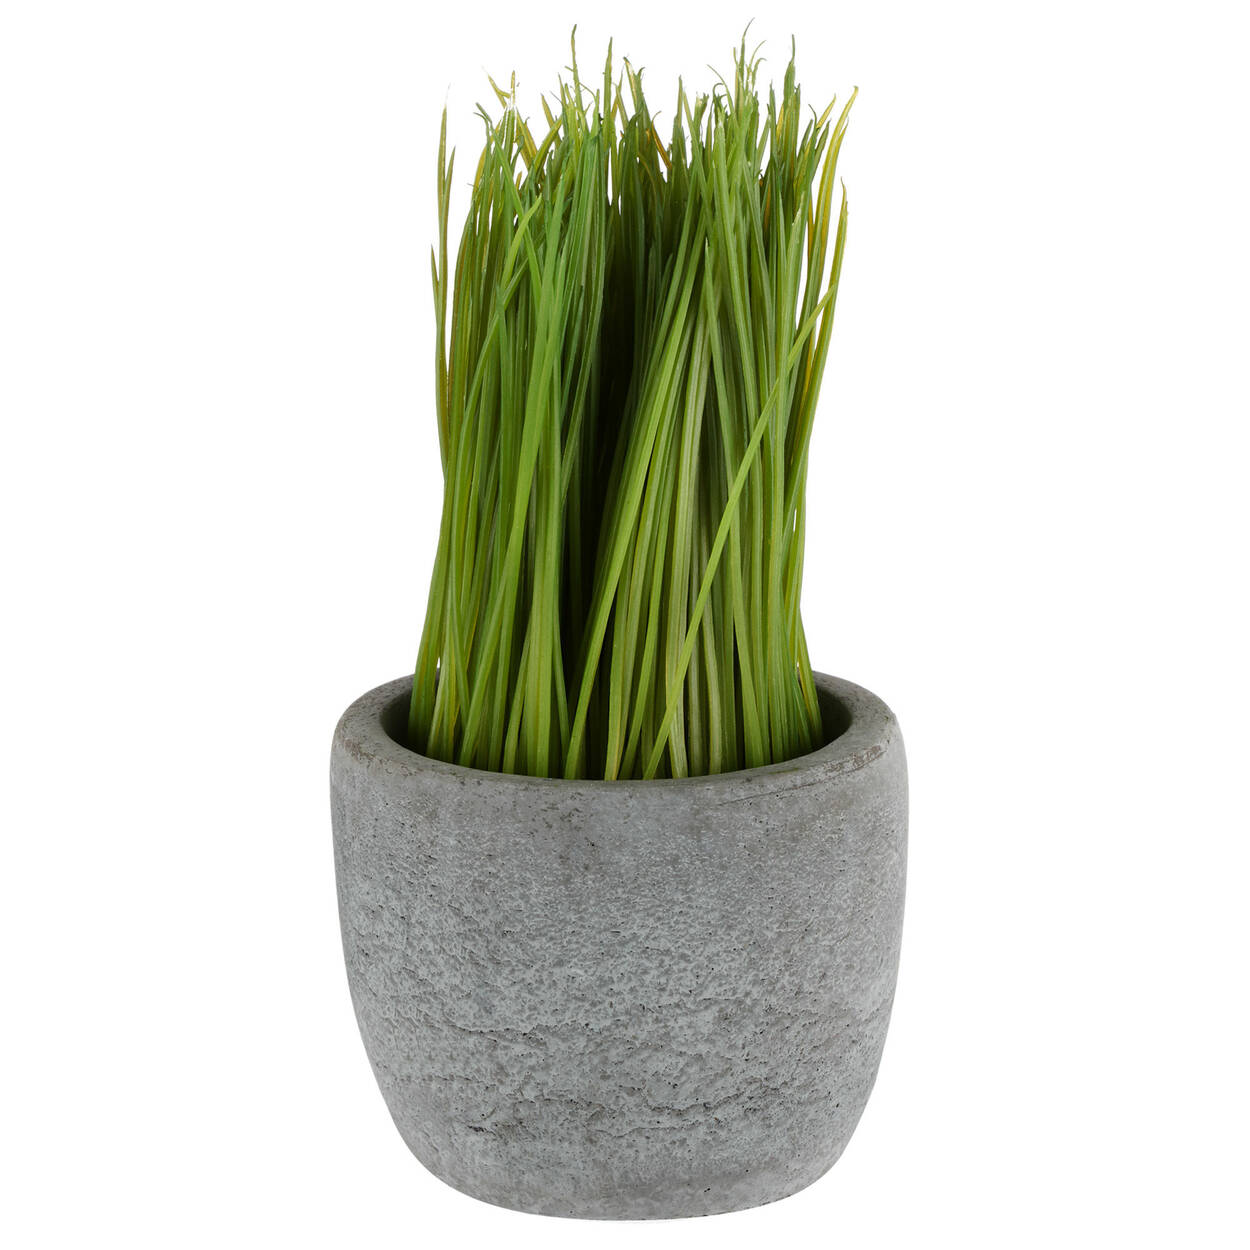 Grass in Cement Pot